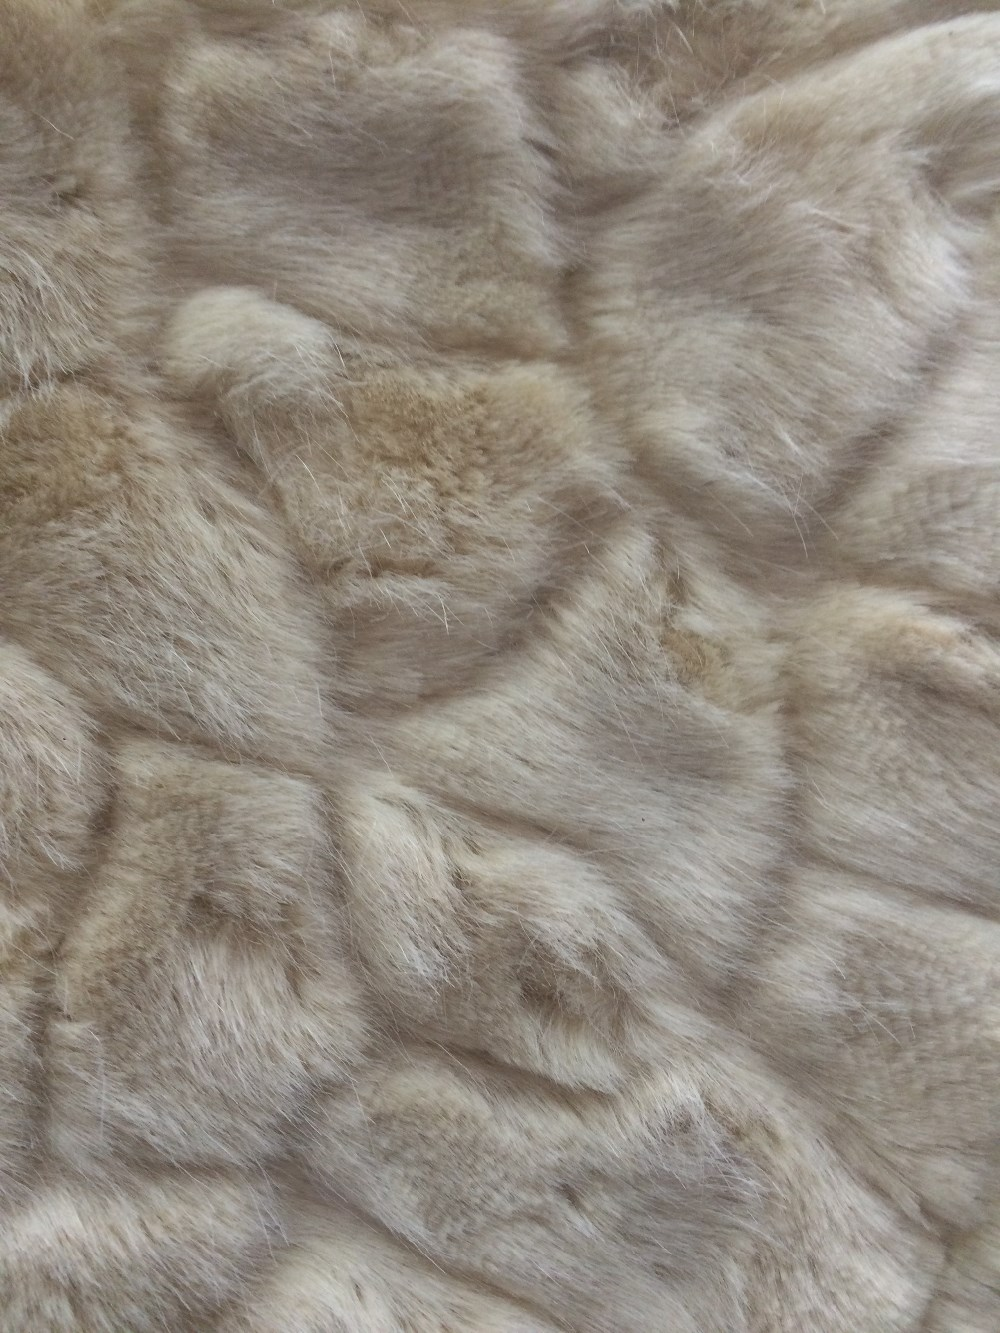 Pressed two-tone fake fur fabric design with high quality